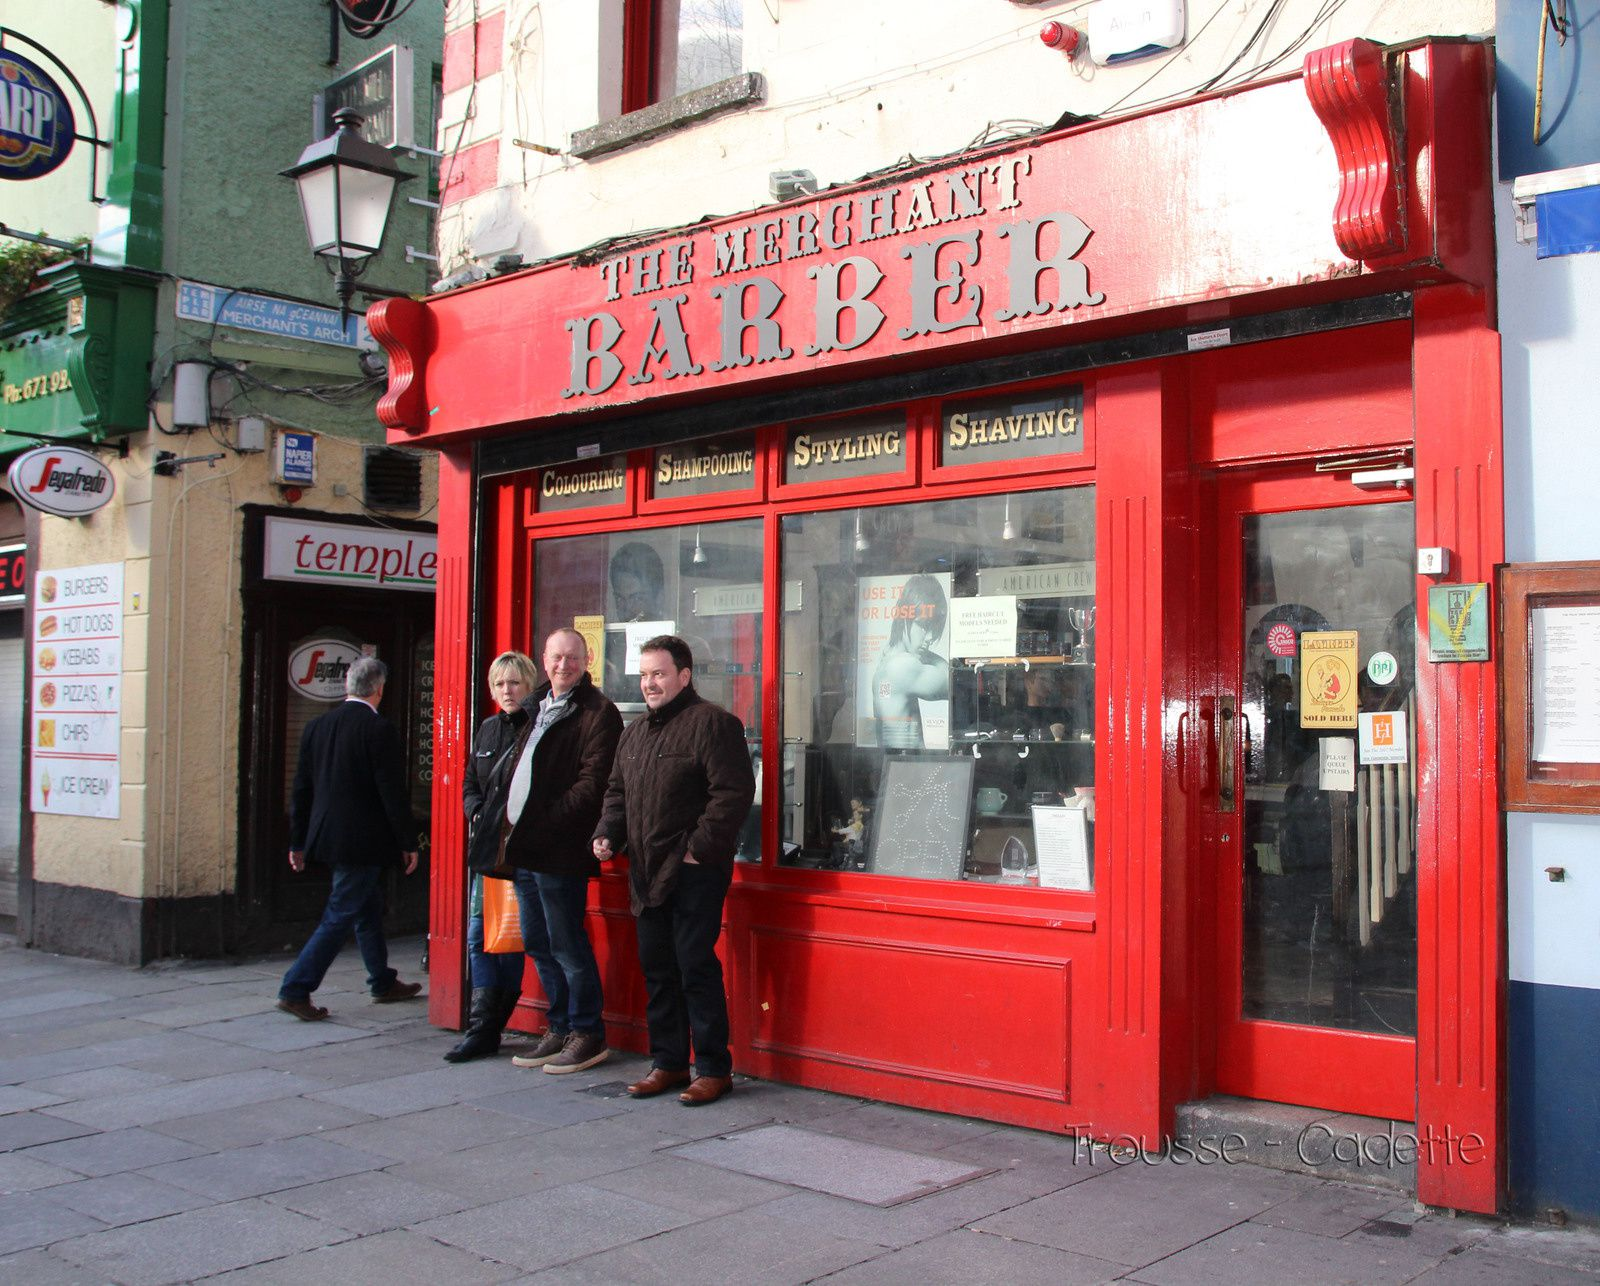 TEMPLE BAR, LE QUARTIER BRANCHE DE DUBLIN